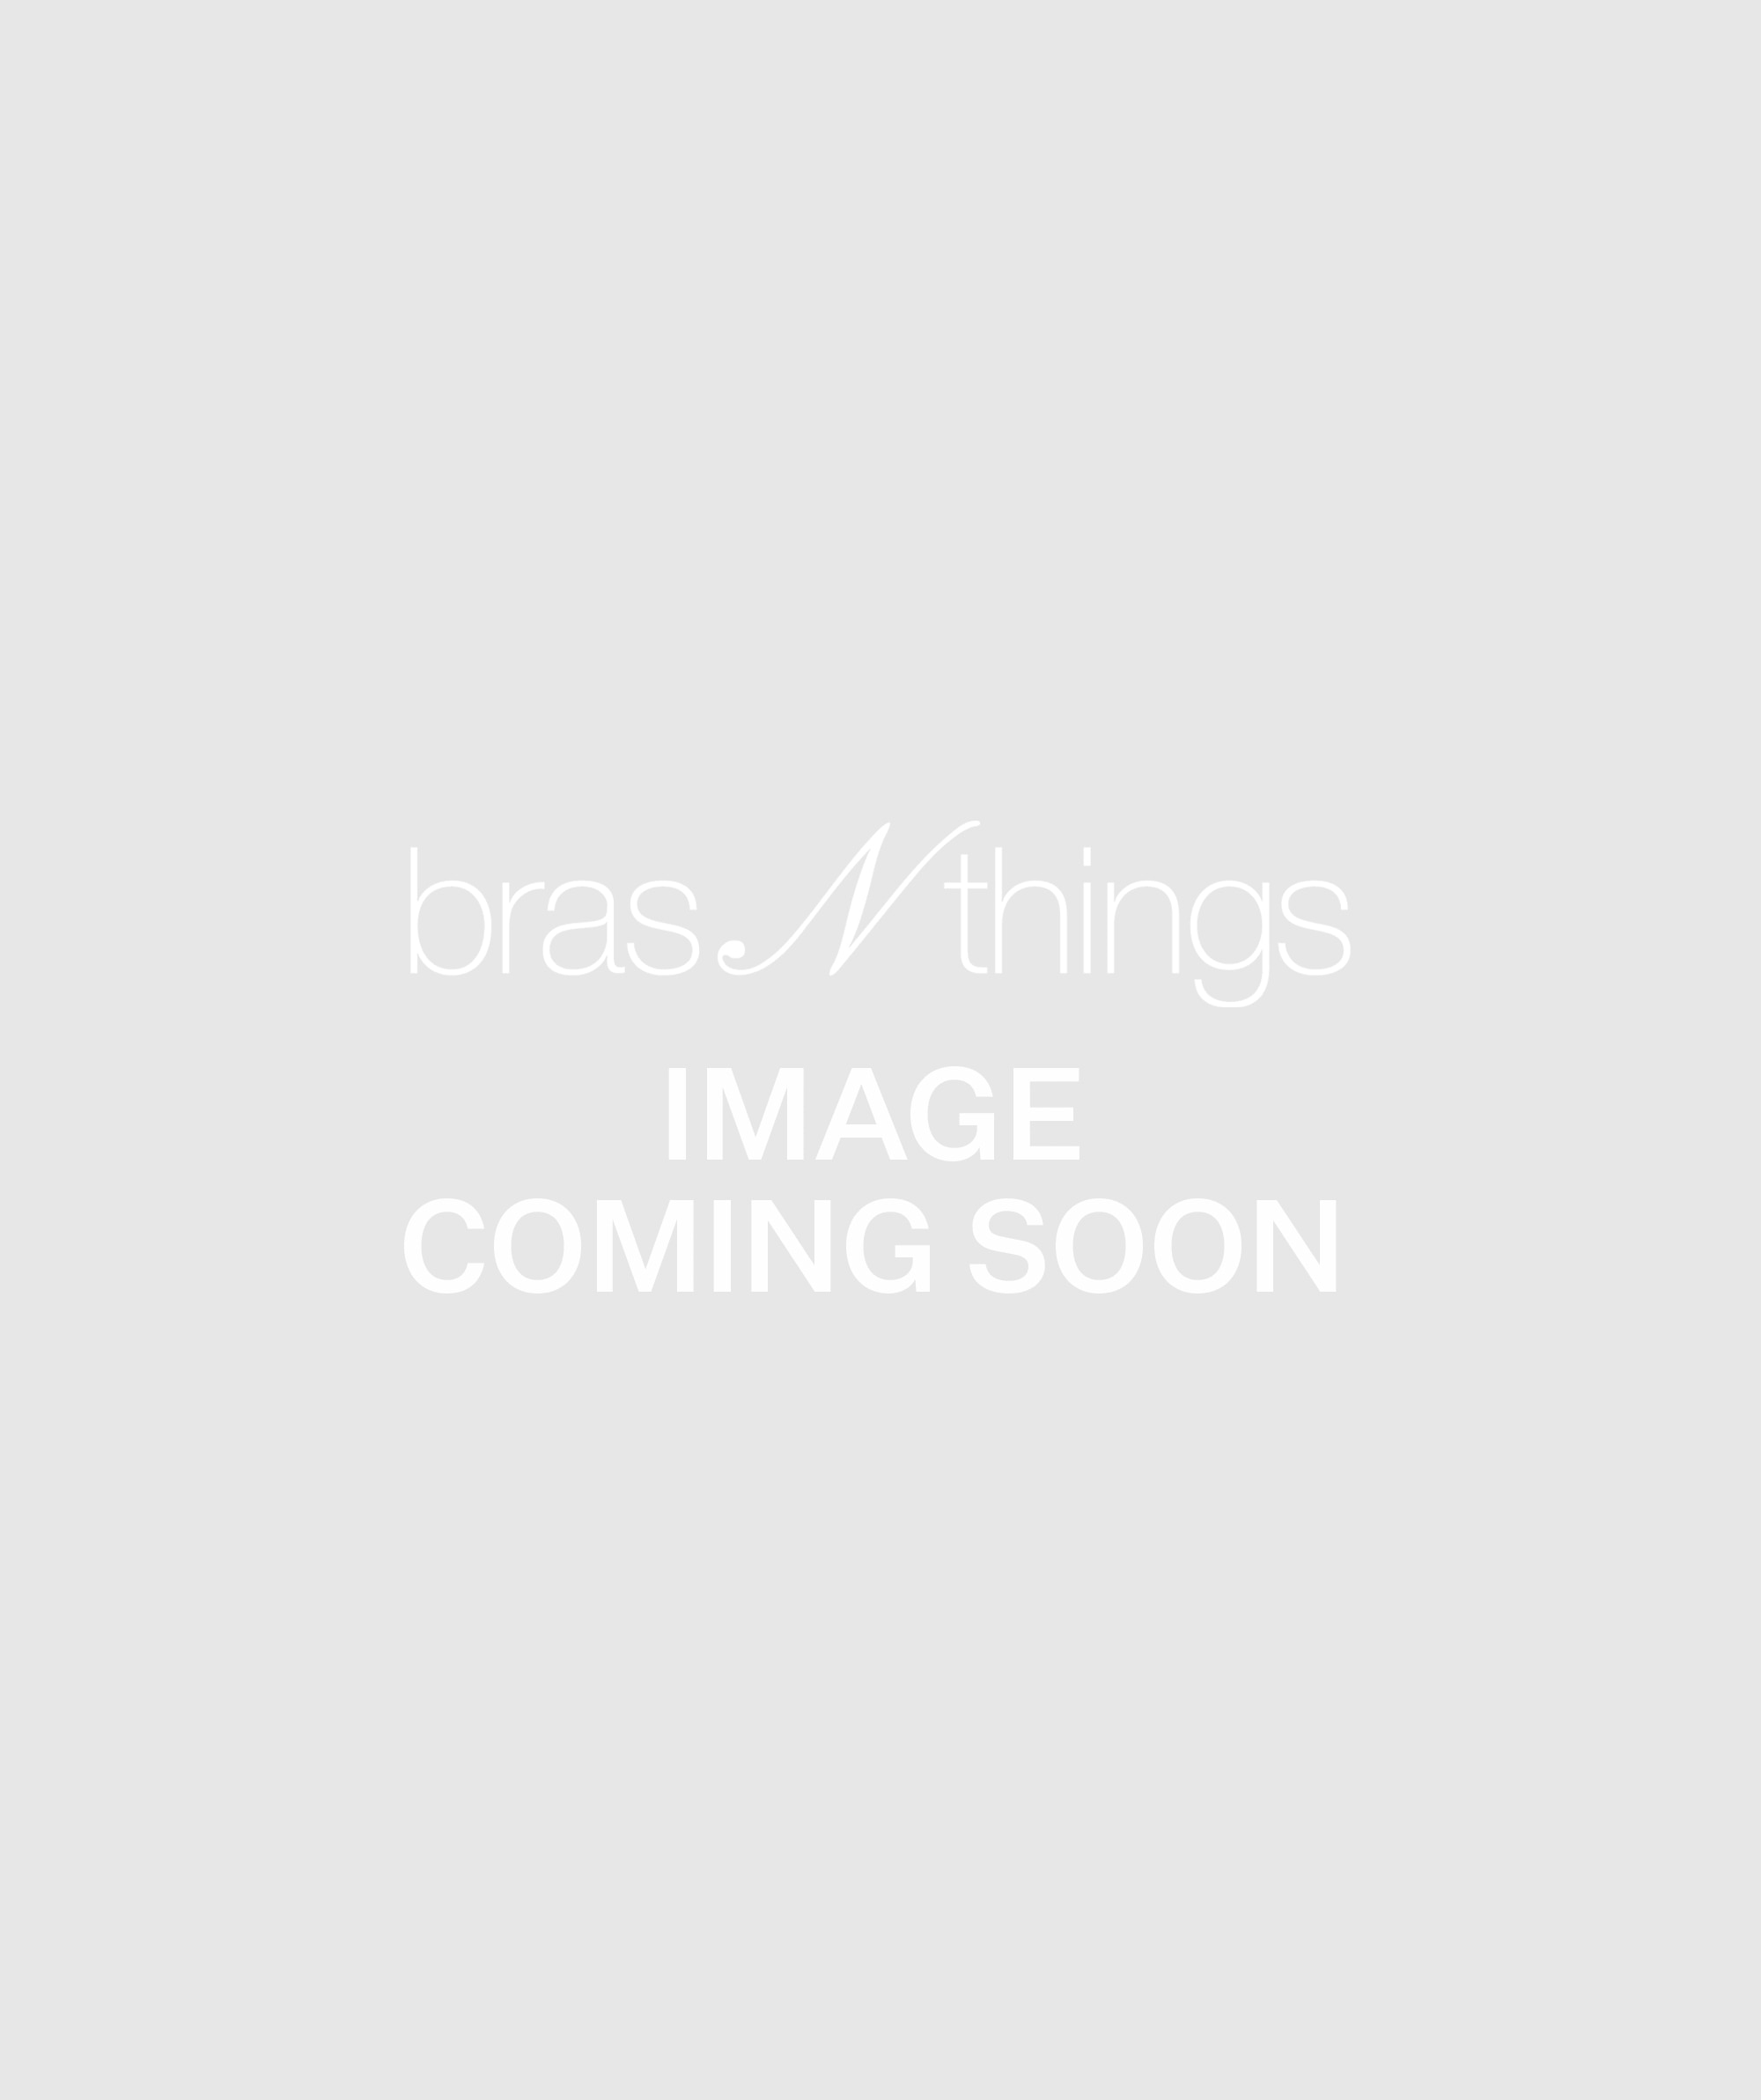 Body Bliss Strapless Push Up Bra - Black